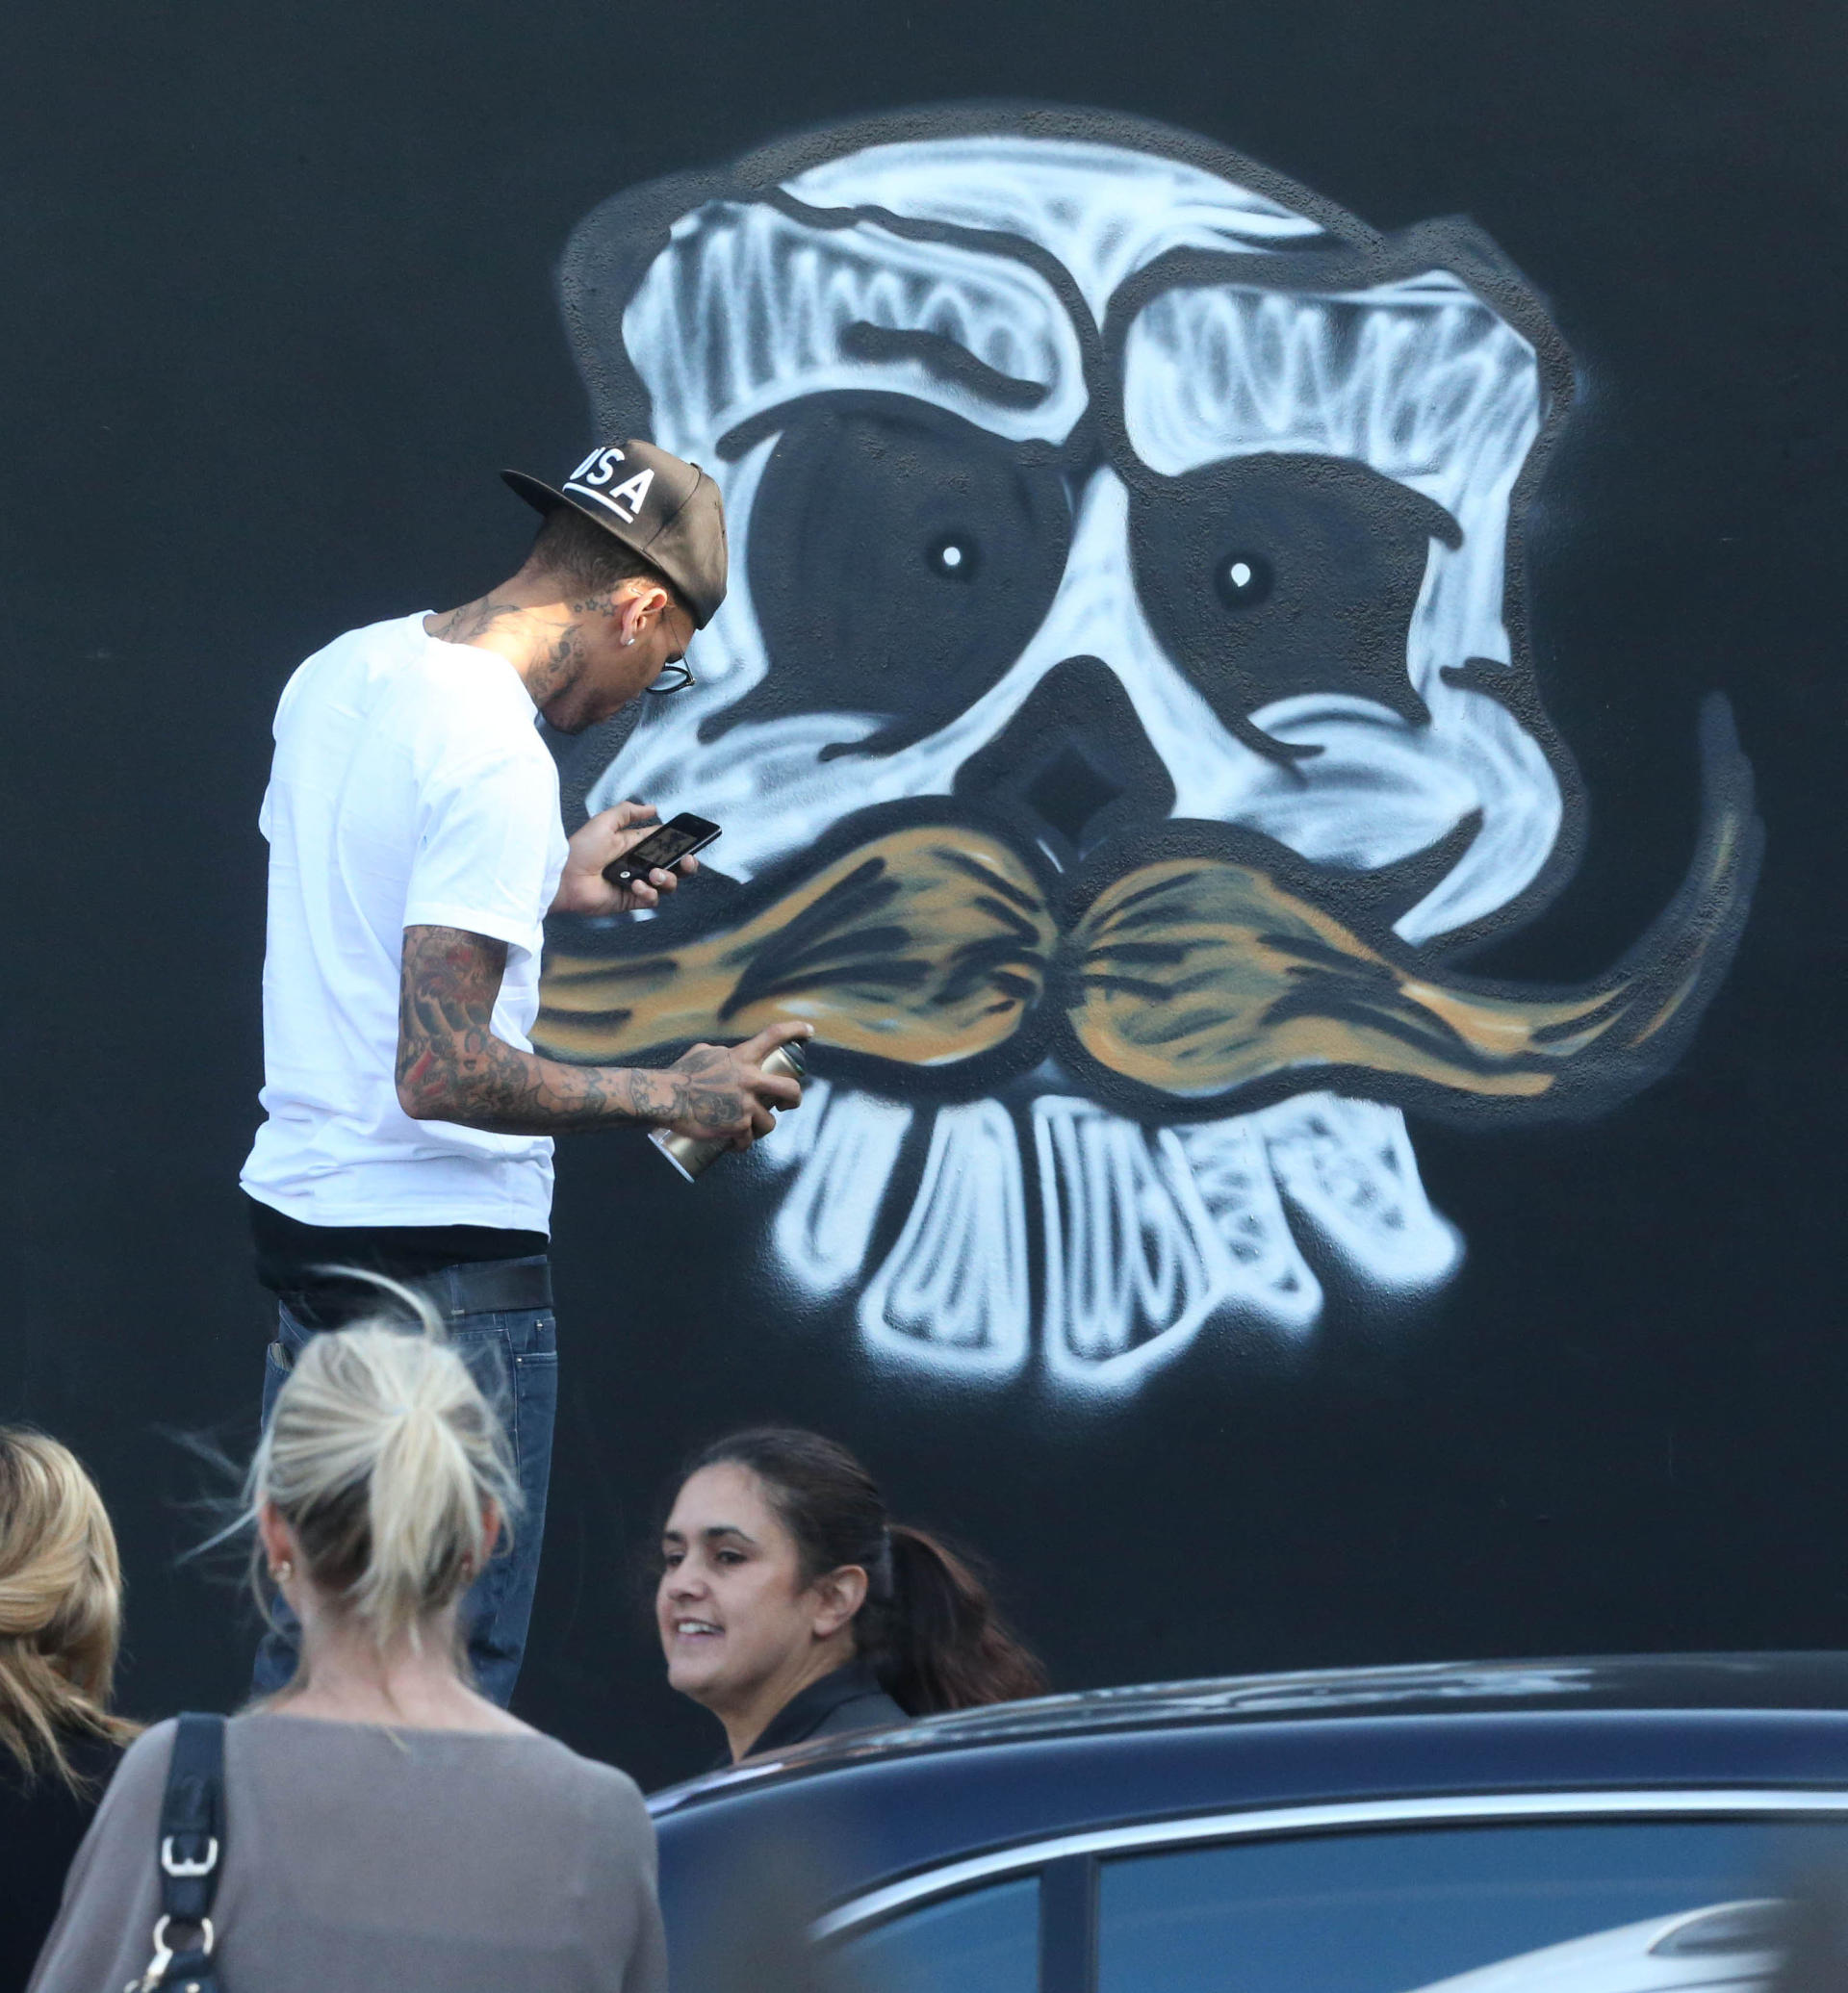 Chris brown spray paints a mural in miami 141399 for Chris brown mural